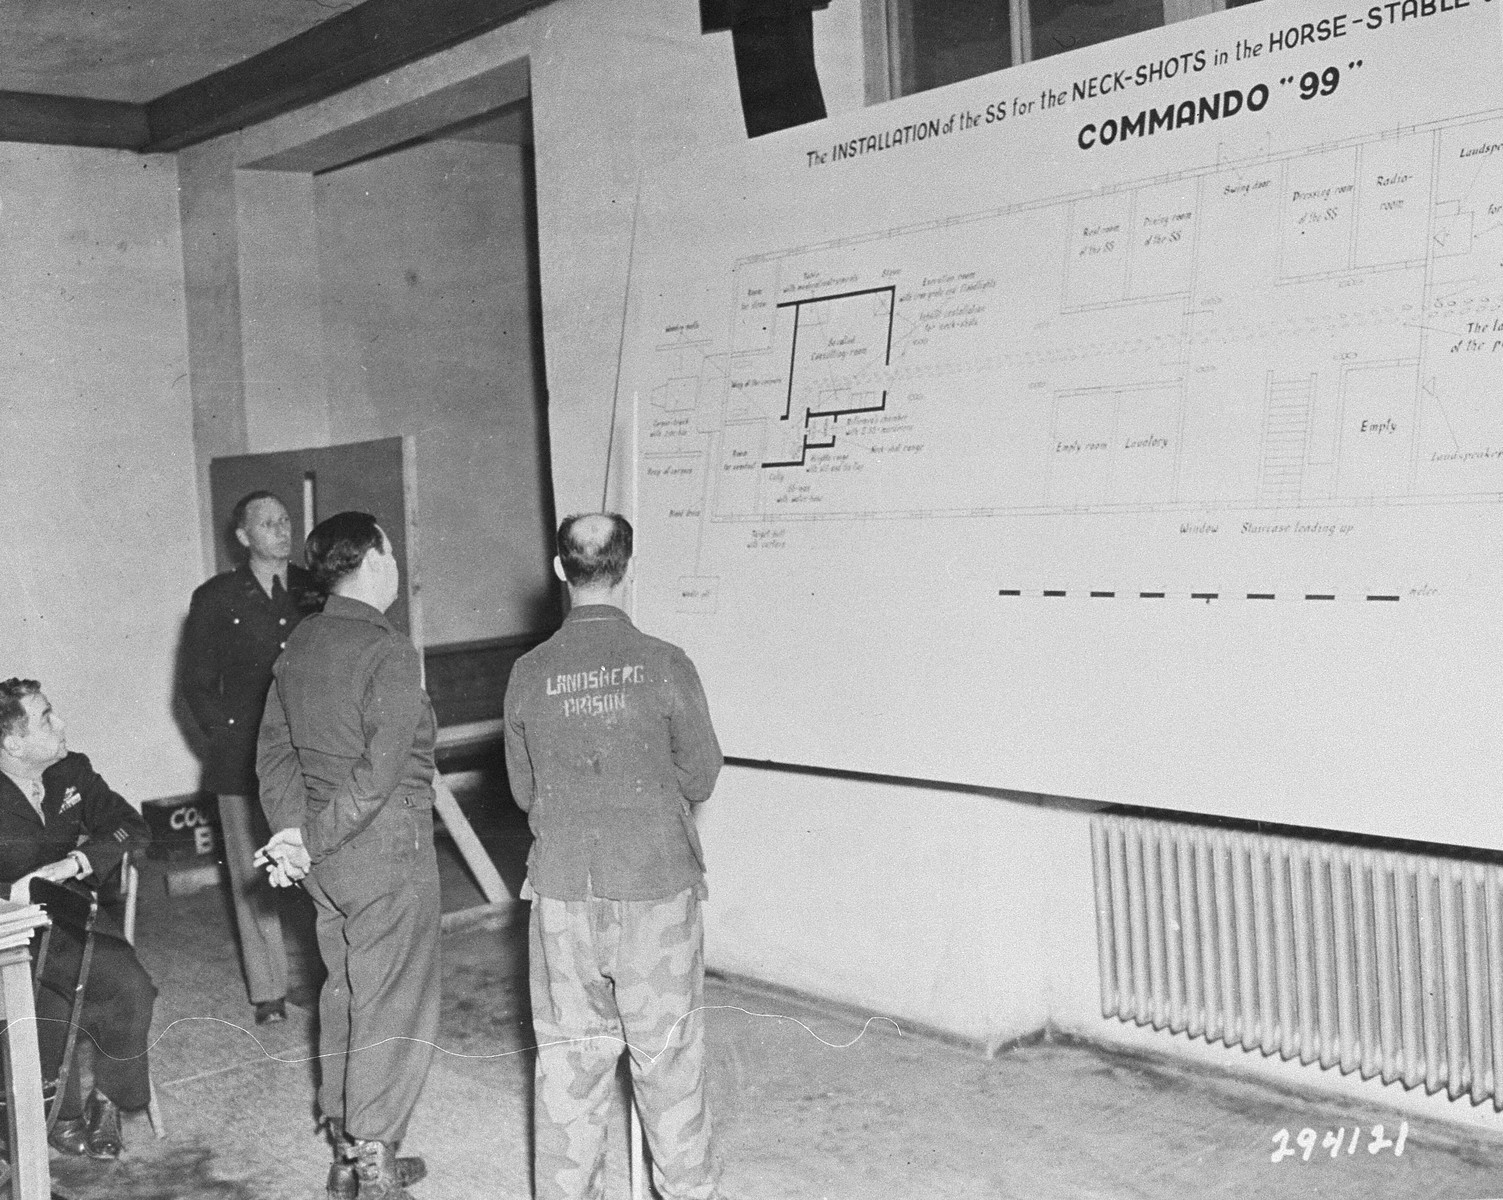 Hermann Helbig, an ethnic German from Poznan, Poland, identifies a diagram of a stable where Russian POWs were shot, during testimony he gave as a witness for the prosecution at the Buchenwald war crimes trial.